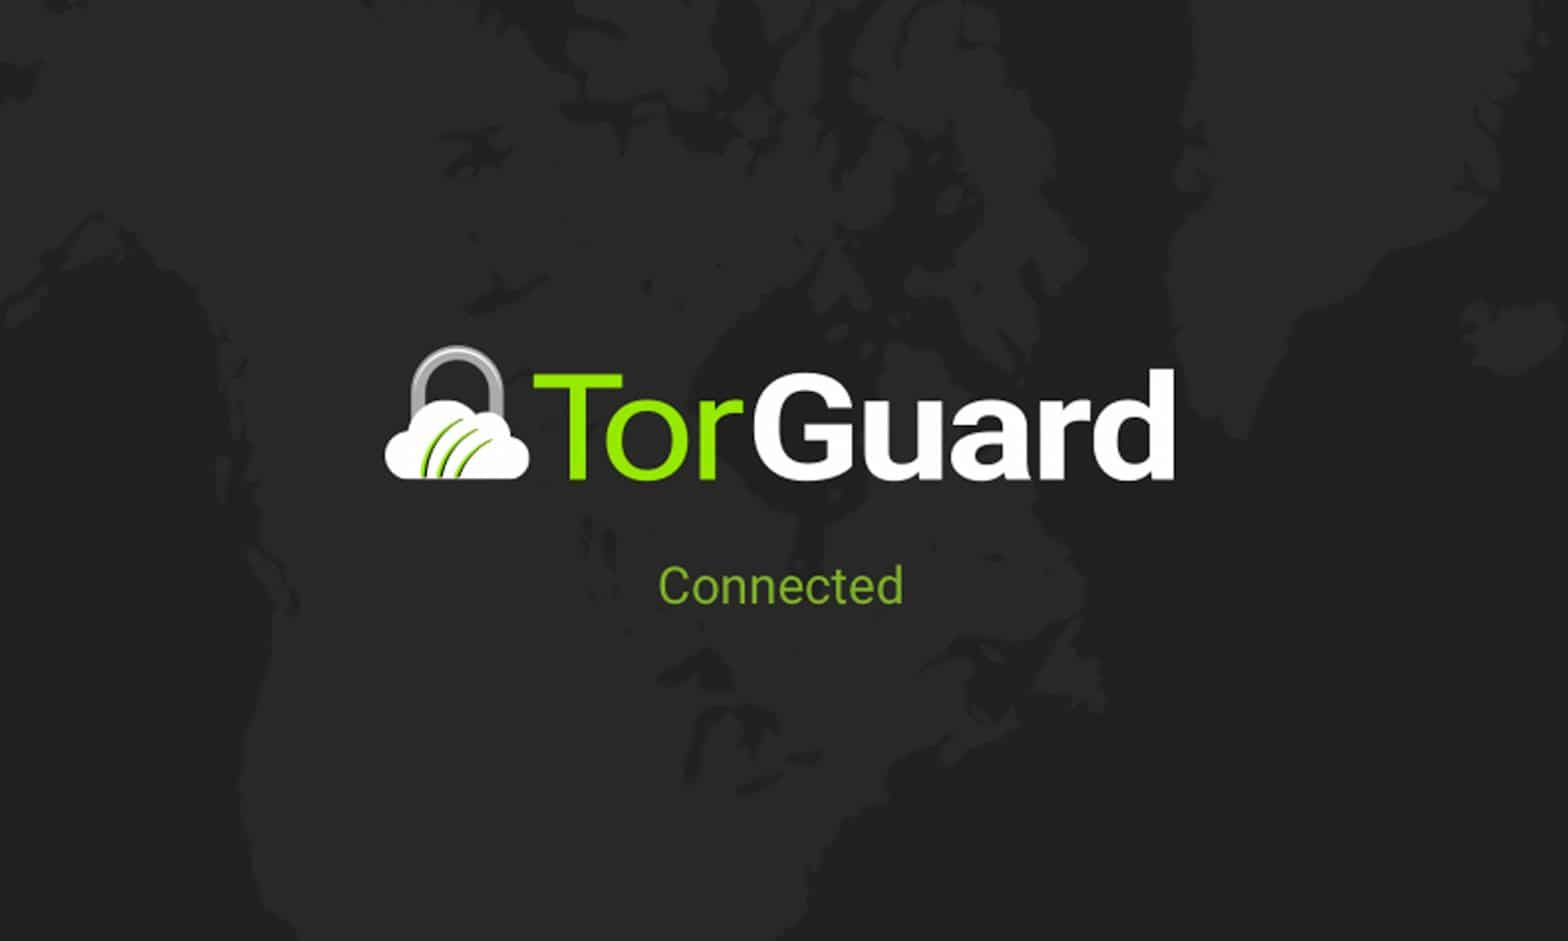 New TorGuard App for iOS